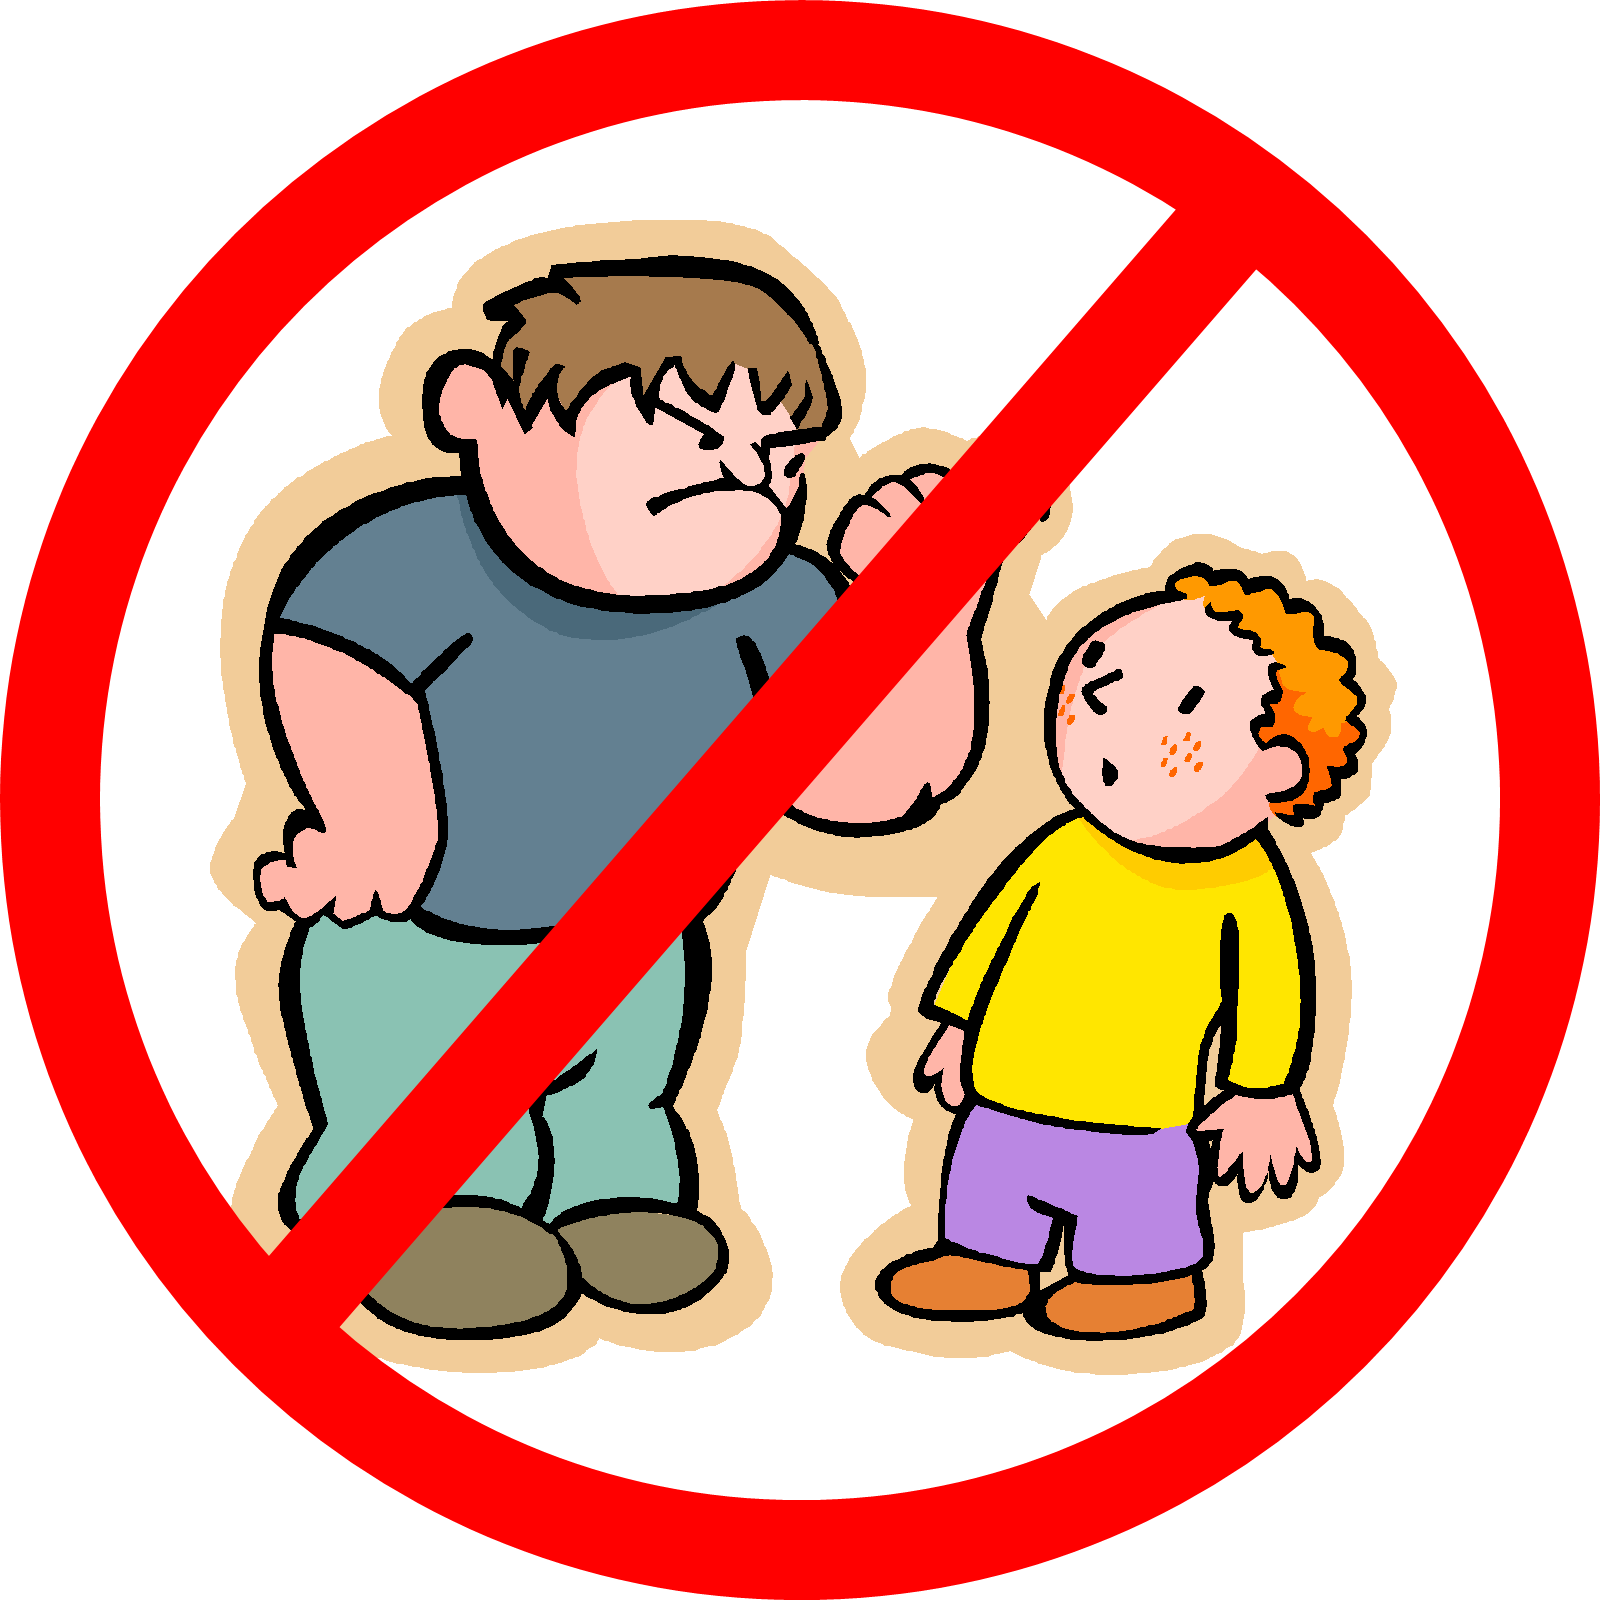 Free Bullying Cliparts, Download Free Clip Art, Free Clip Art on ... clip freeuse